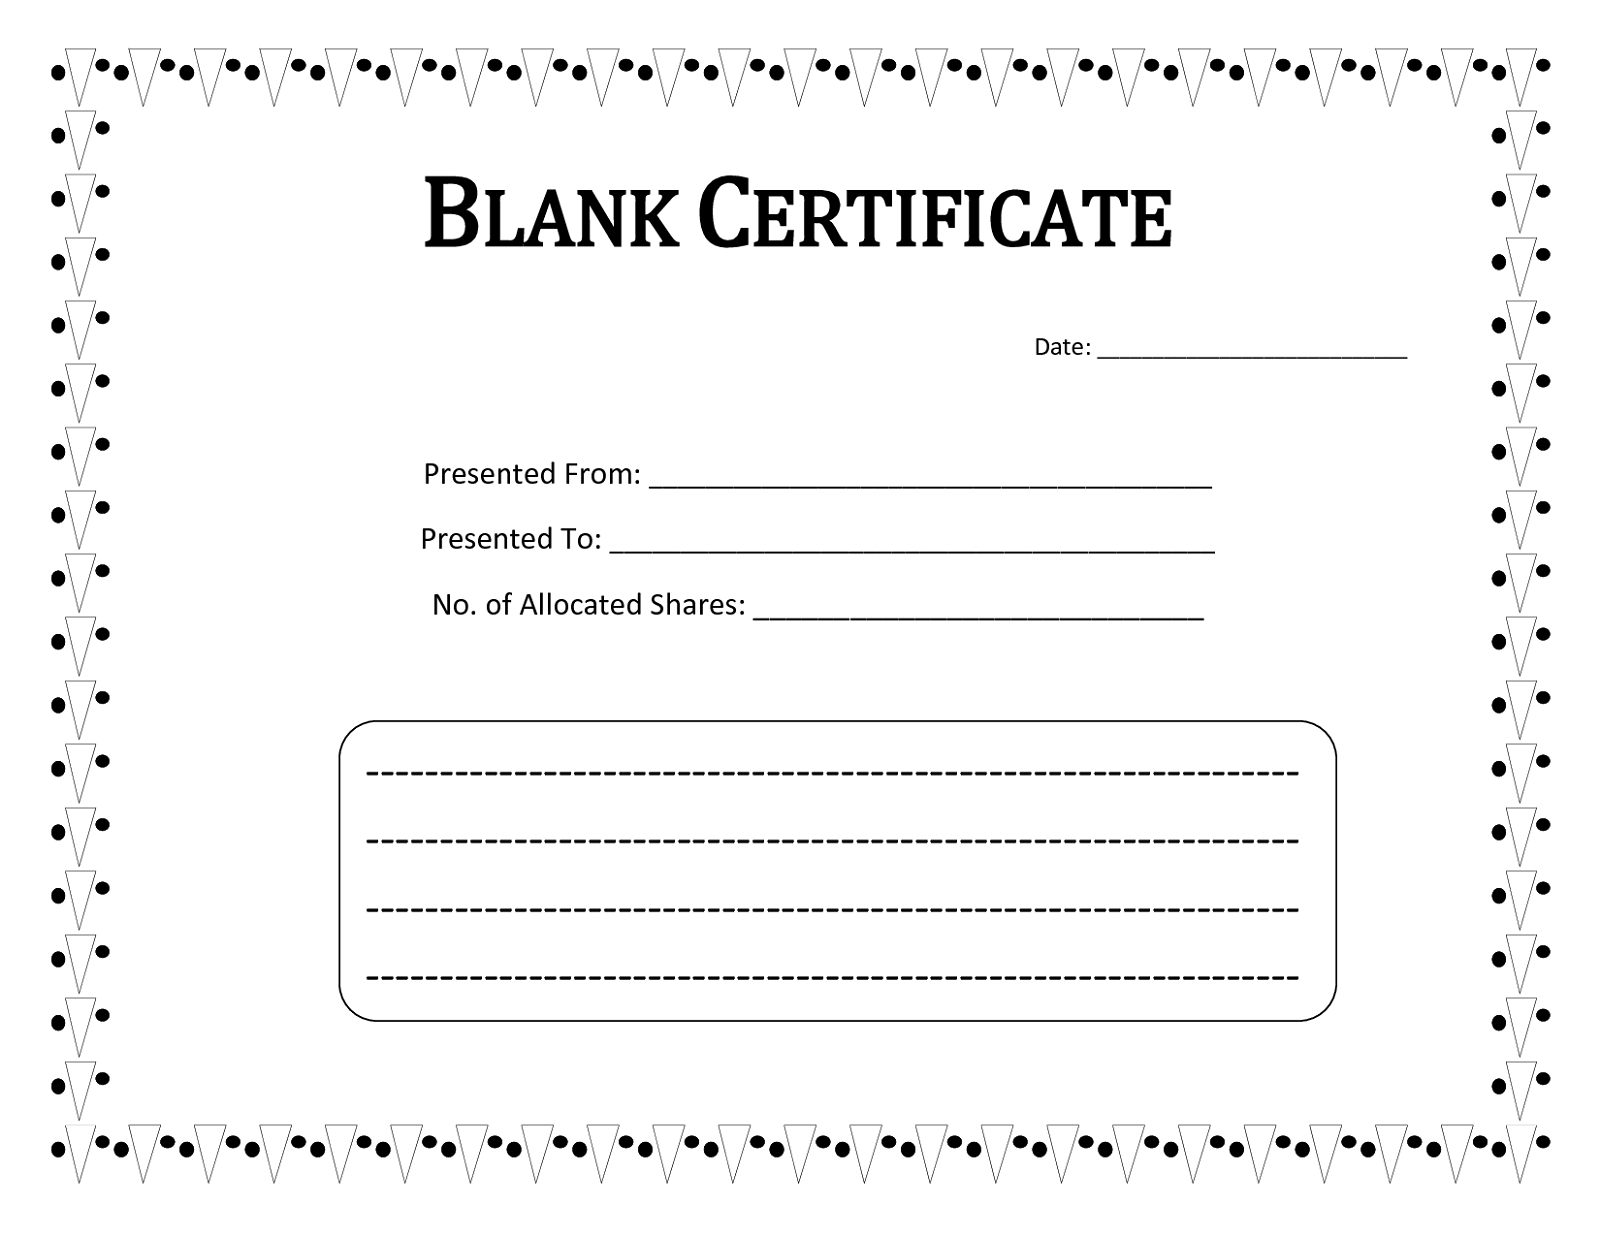 blank certificate template - photo #20